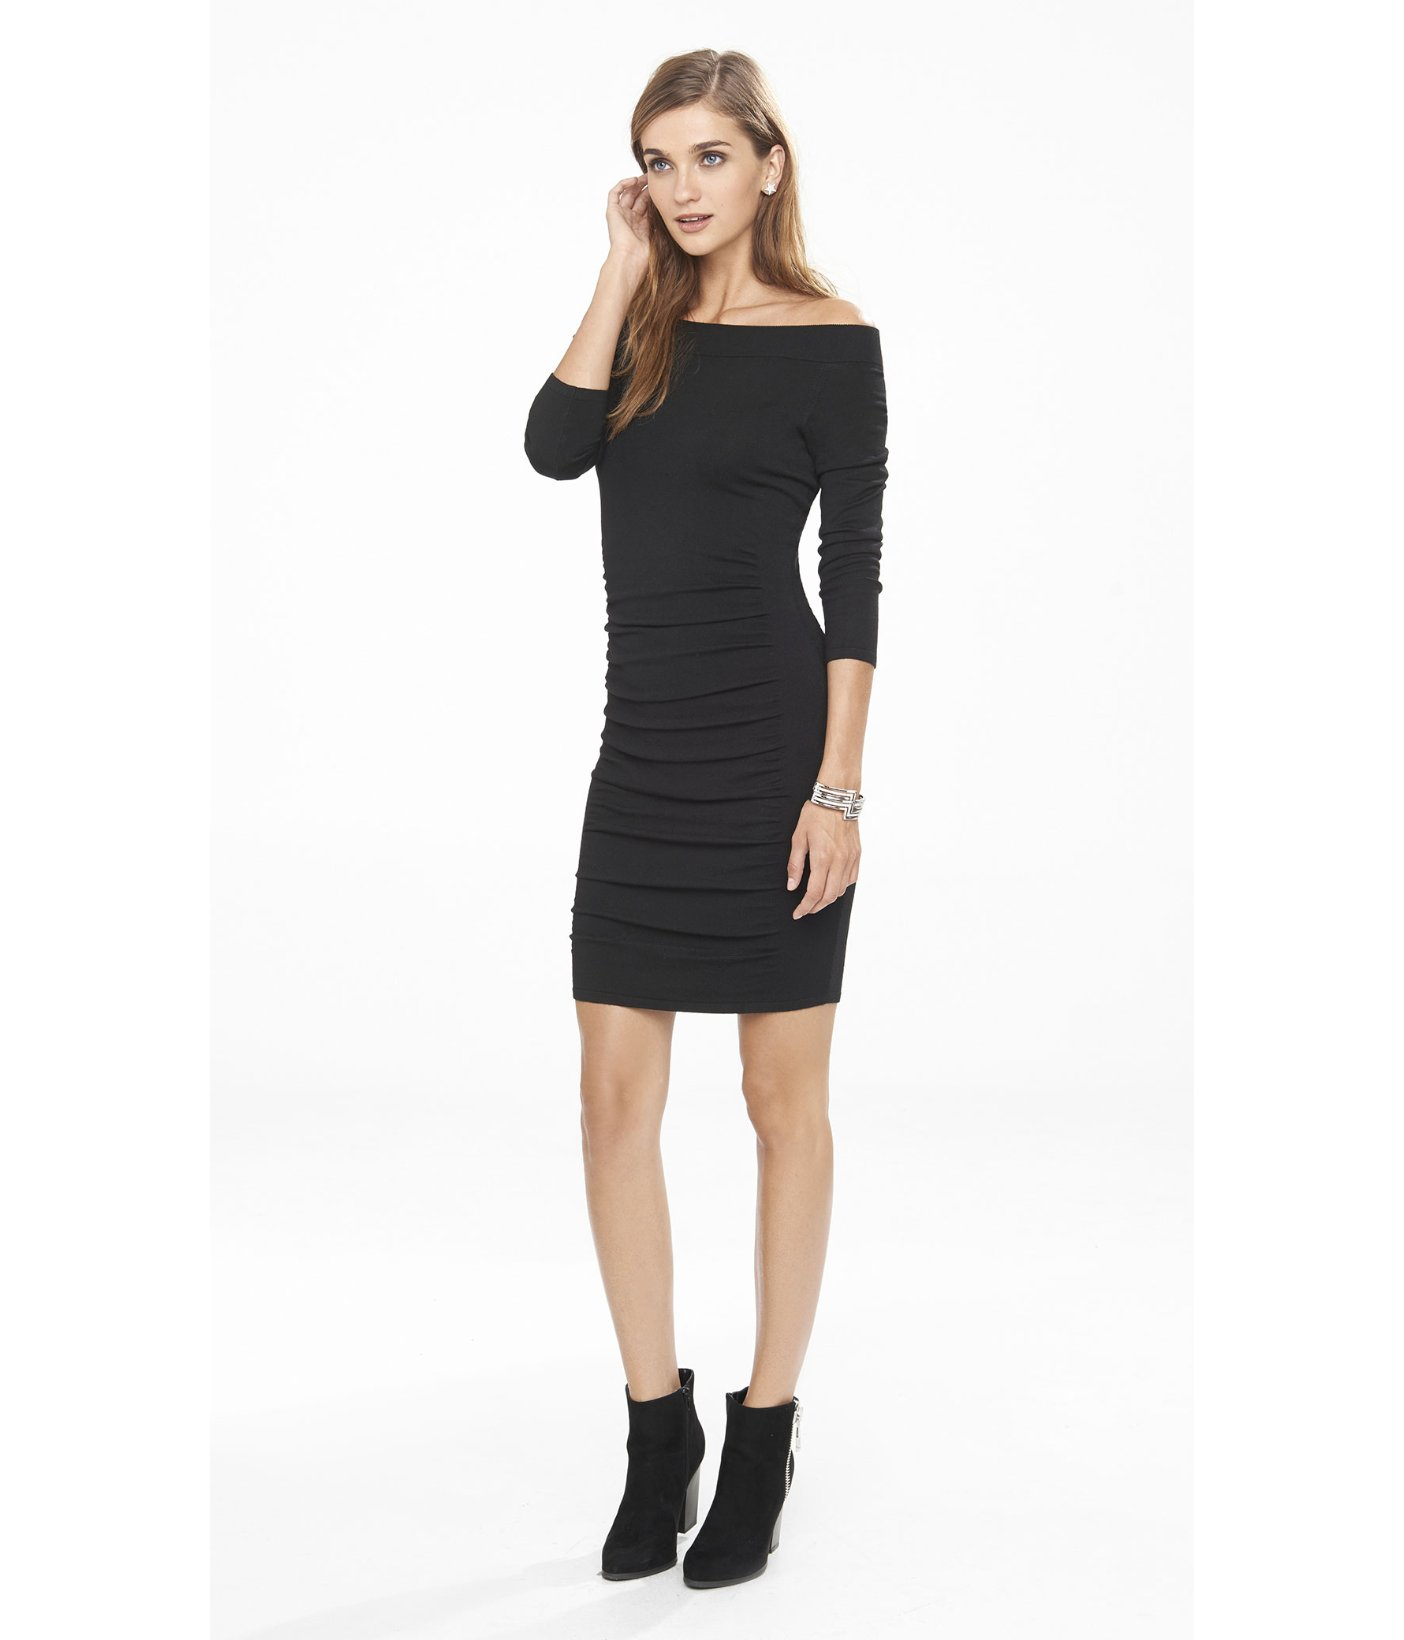 Juniors sweater dresses can be worn in much the same way. When it comes to ladies sweater dresses, the main selling point is the familiar texture of the knit sweater dress. This is what makes the long sleeve sweater dress a hit for the holiday season.